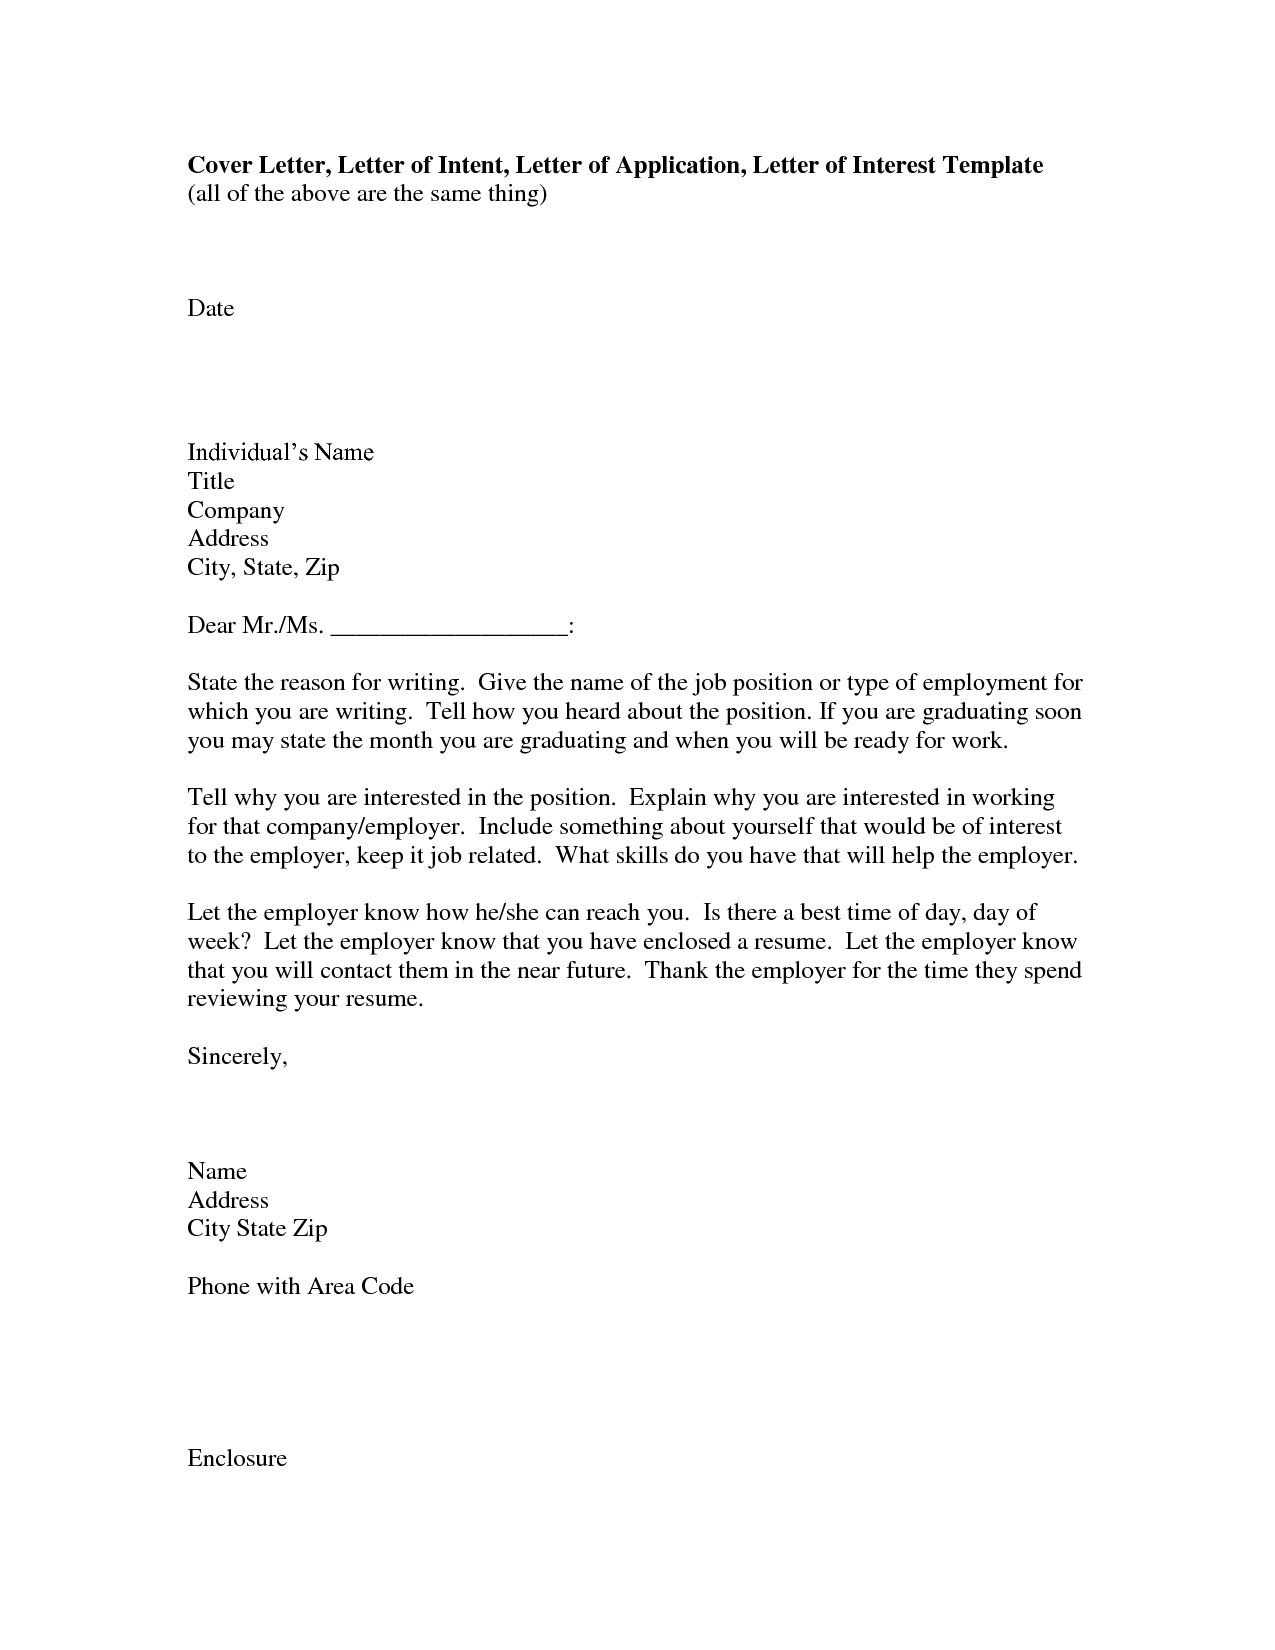 Letter Of Intent For Employment | Crna Cover Letter